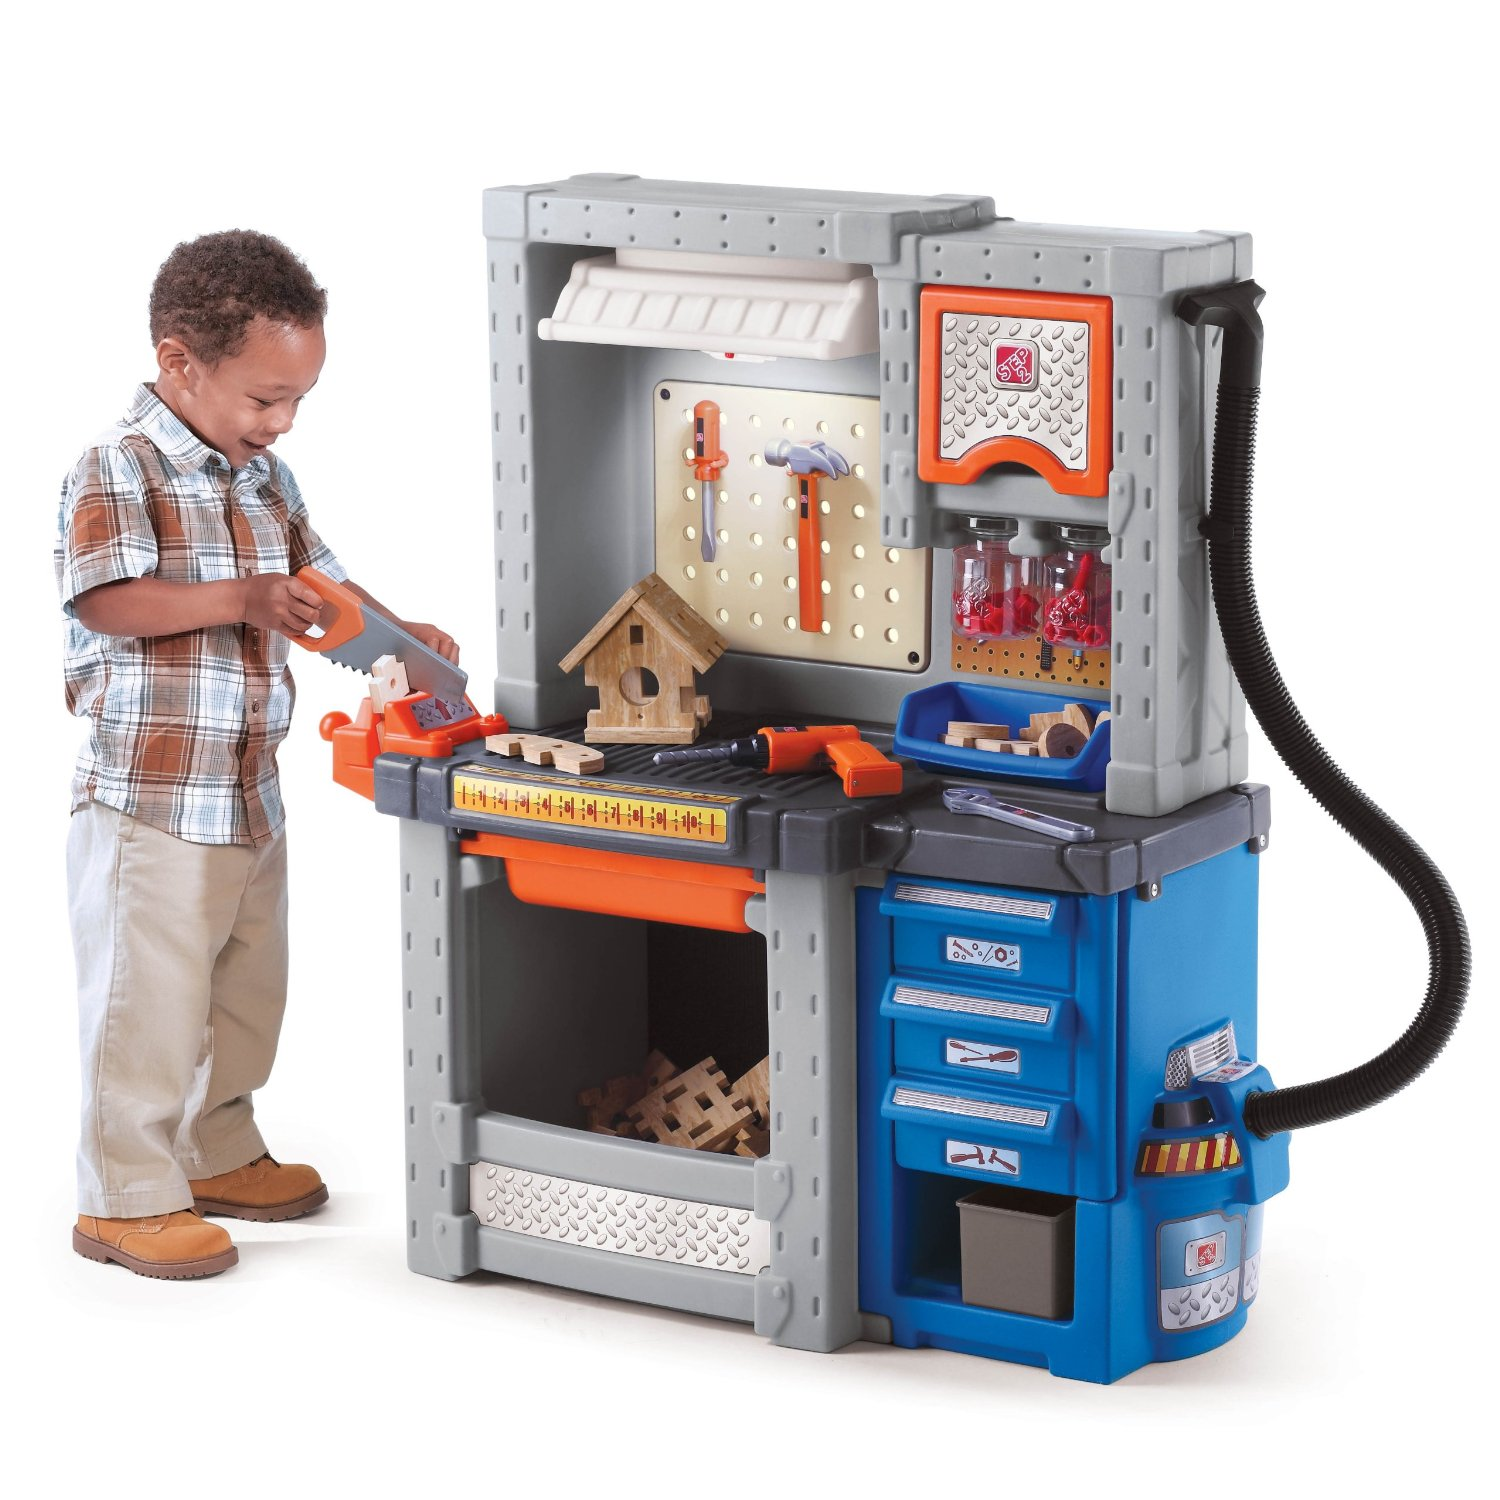 Popular Boy Toys Age 4 : Toddler toys for boys